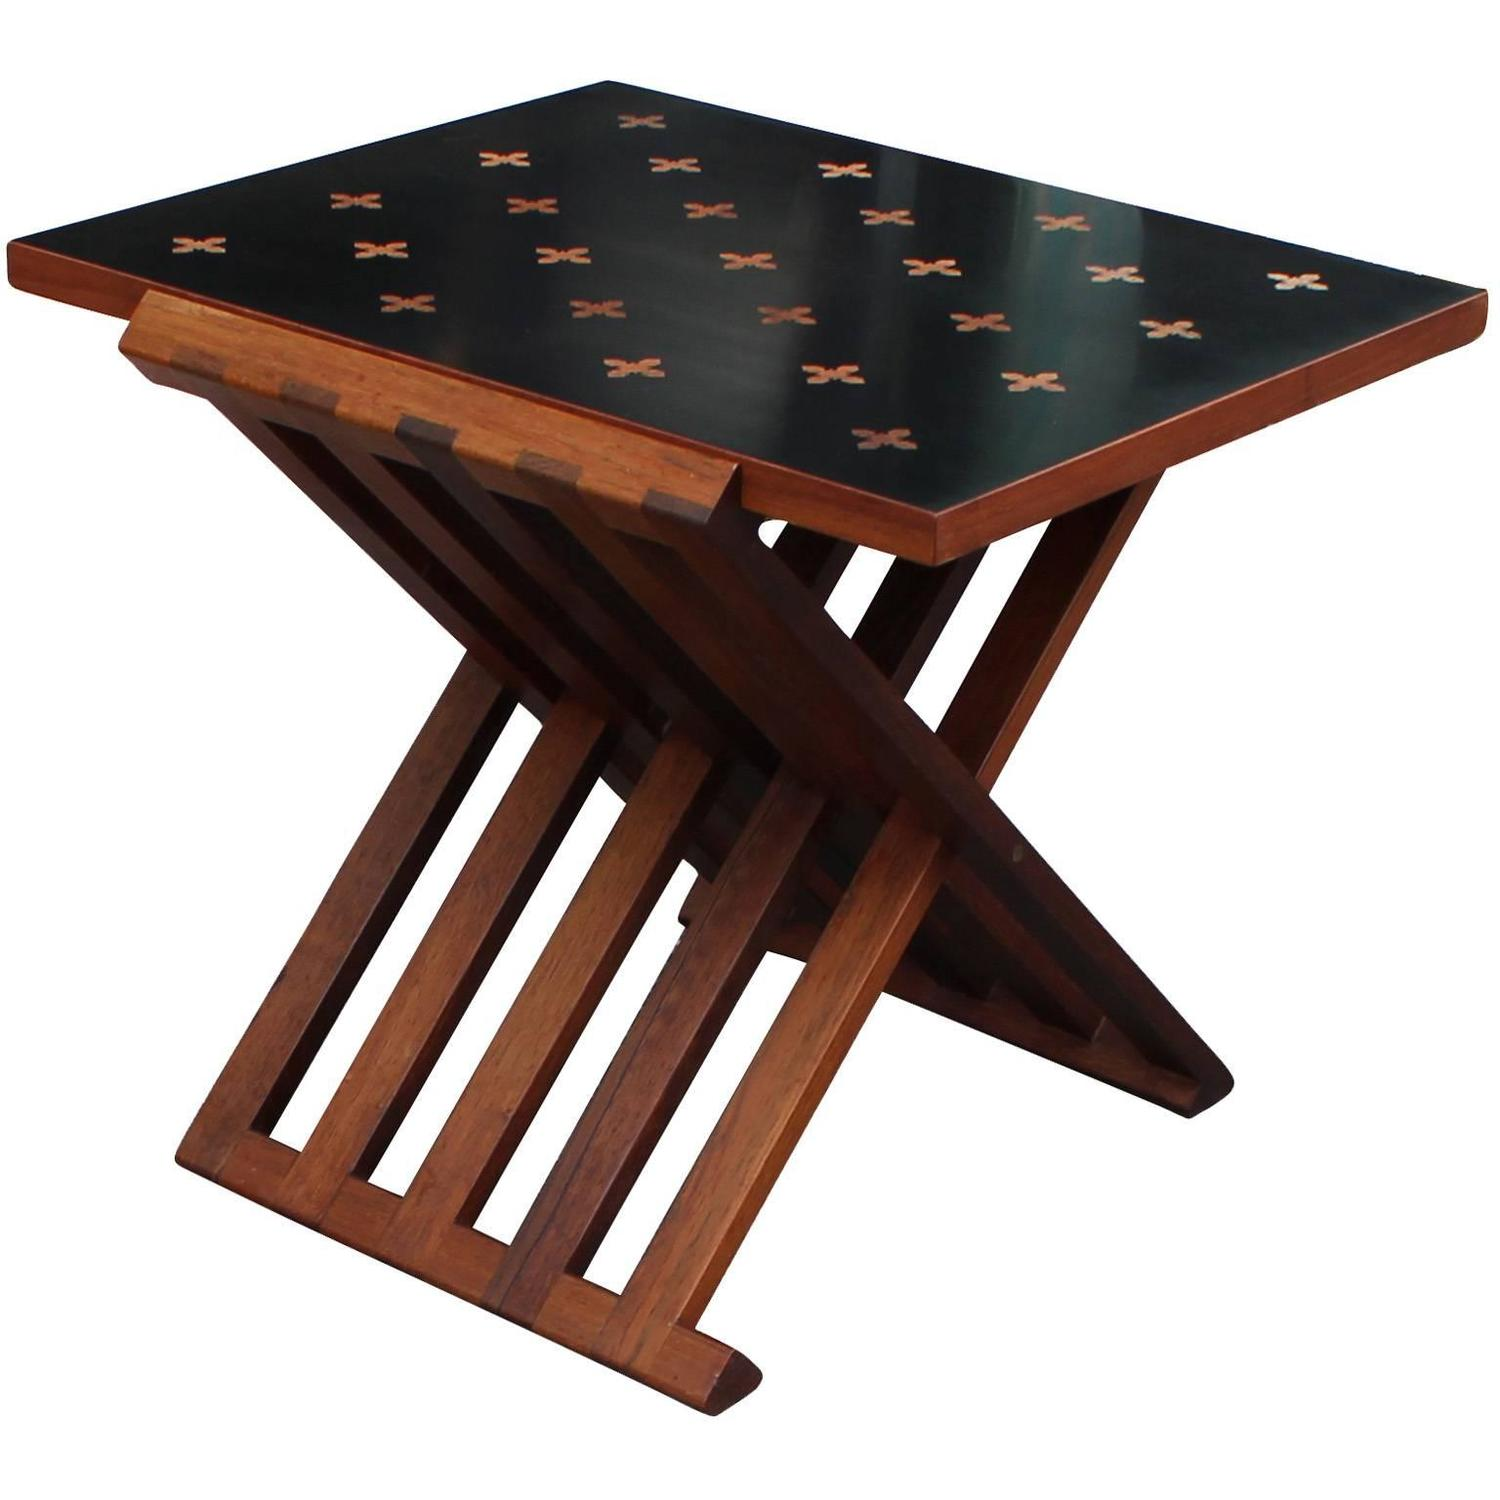 Folding Parquetry Side Table by Edward Wormley for Dunbar at 1stdibs